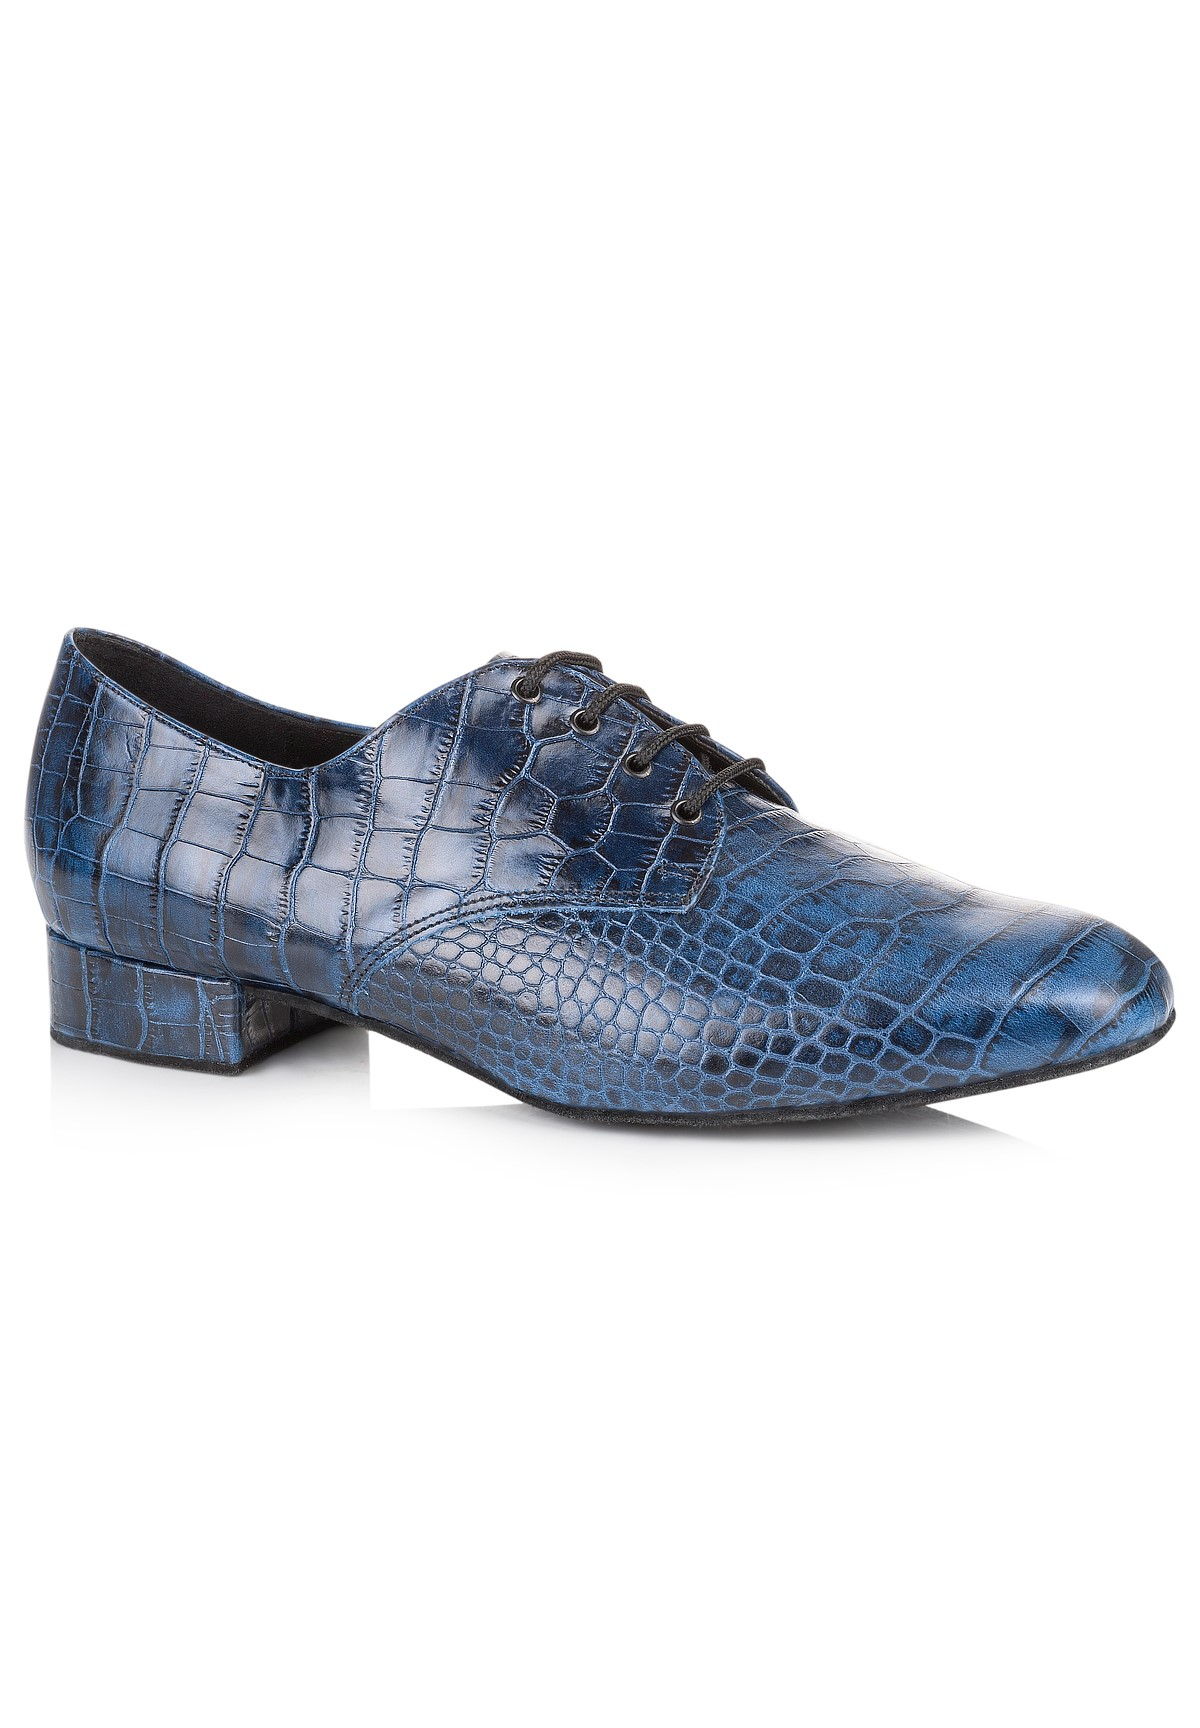 Freed Kelly Croc Dance Shoes